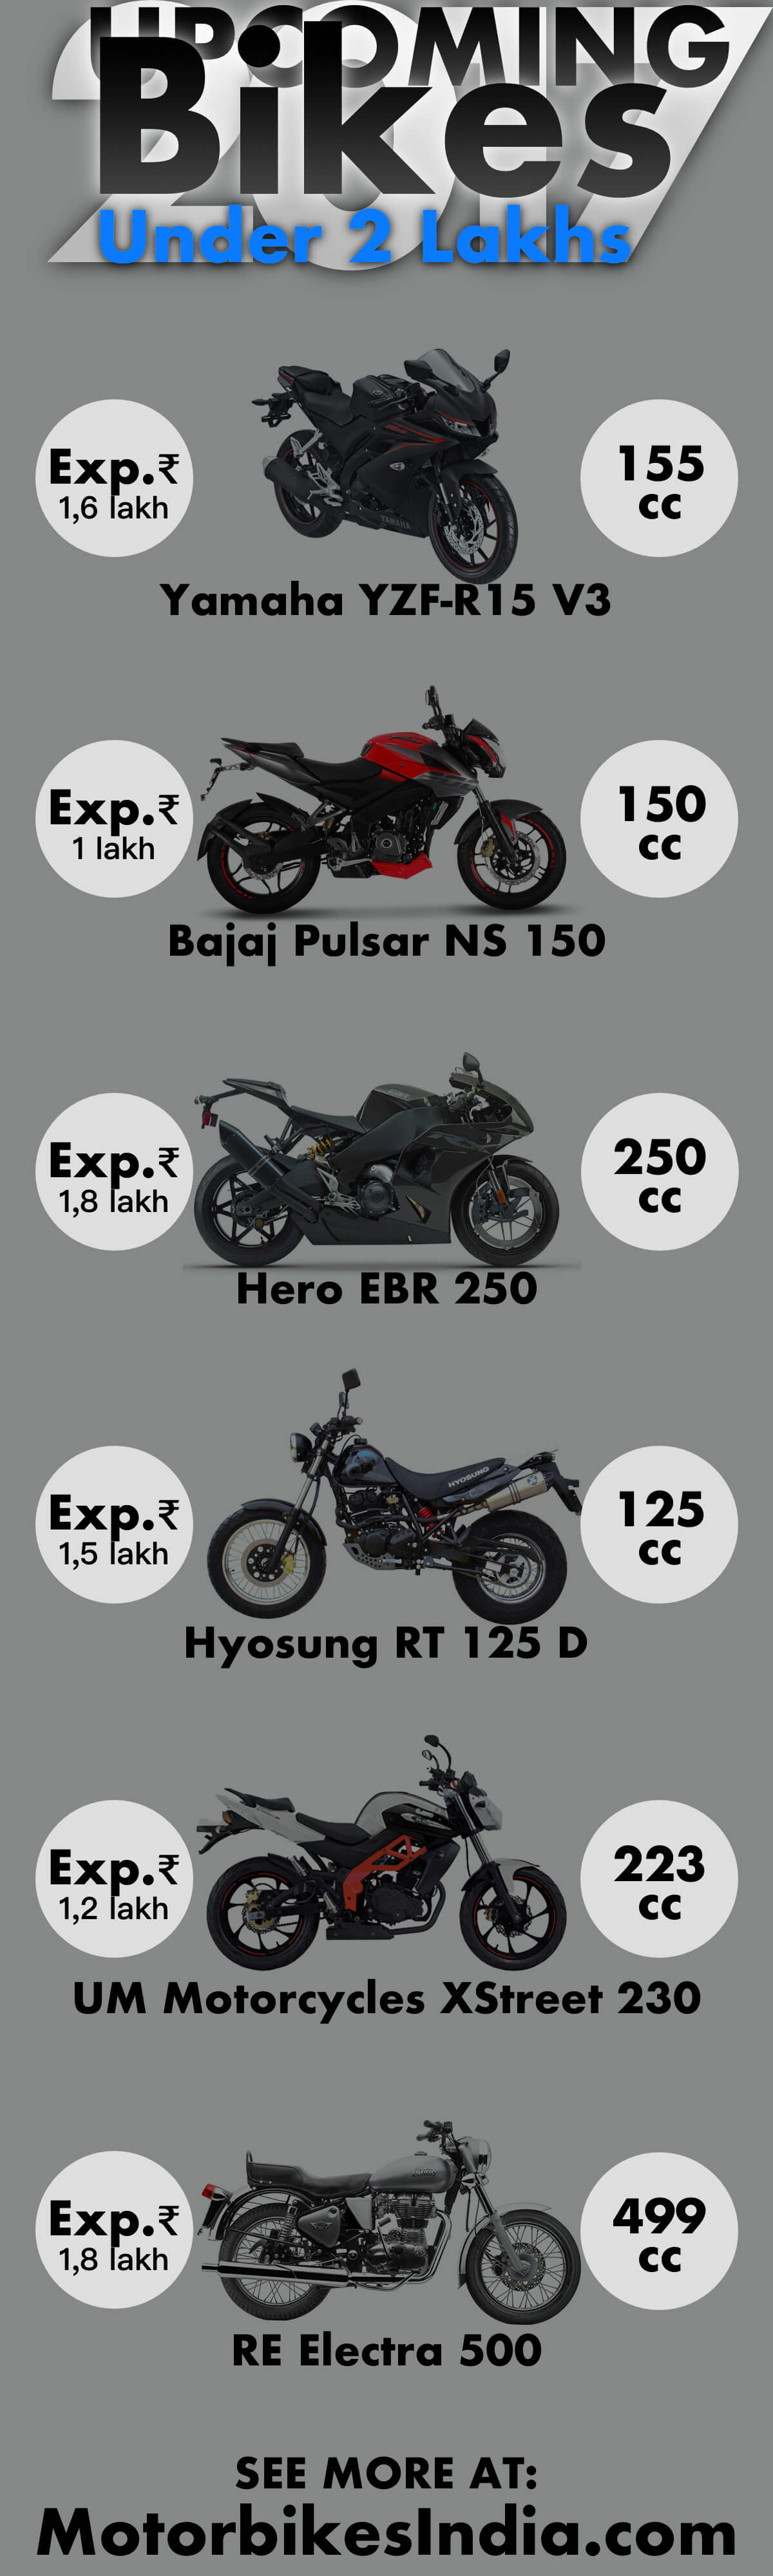 Upcoming Bikes Under 2 Lakhs 2017